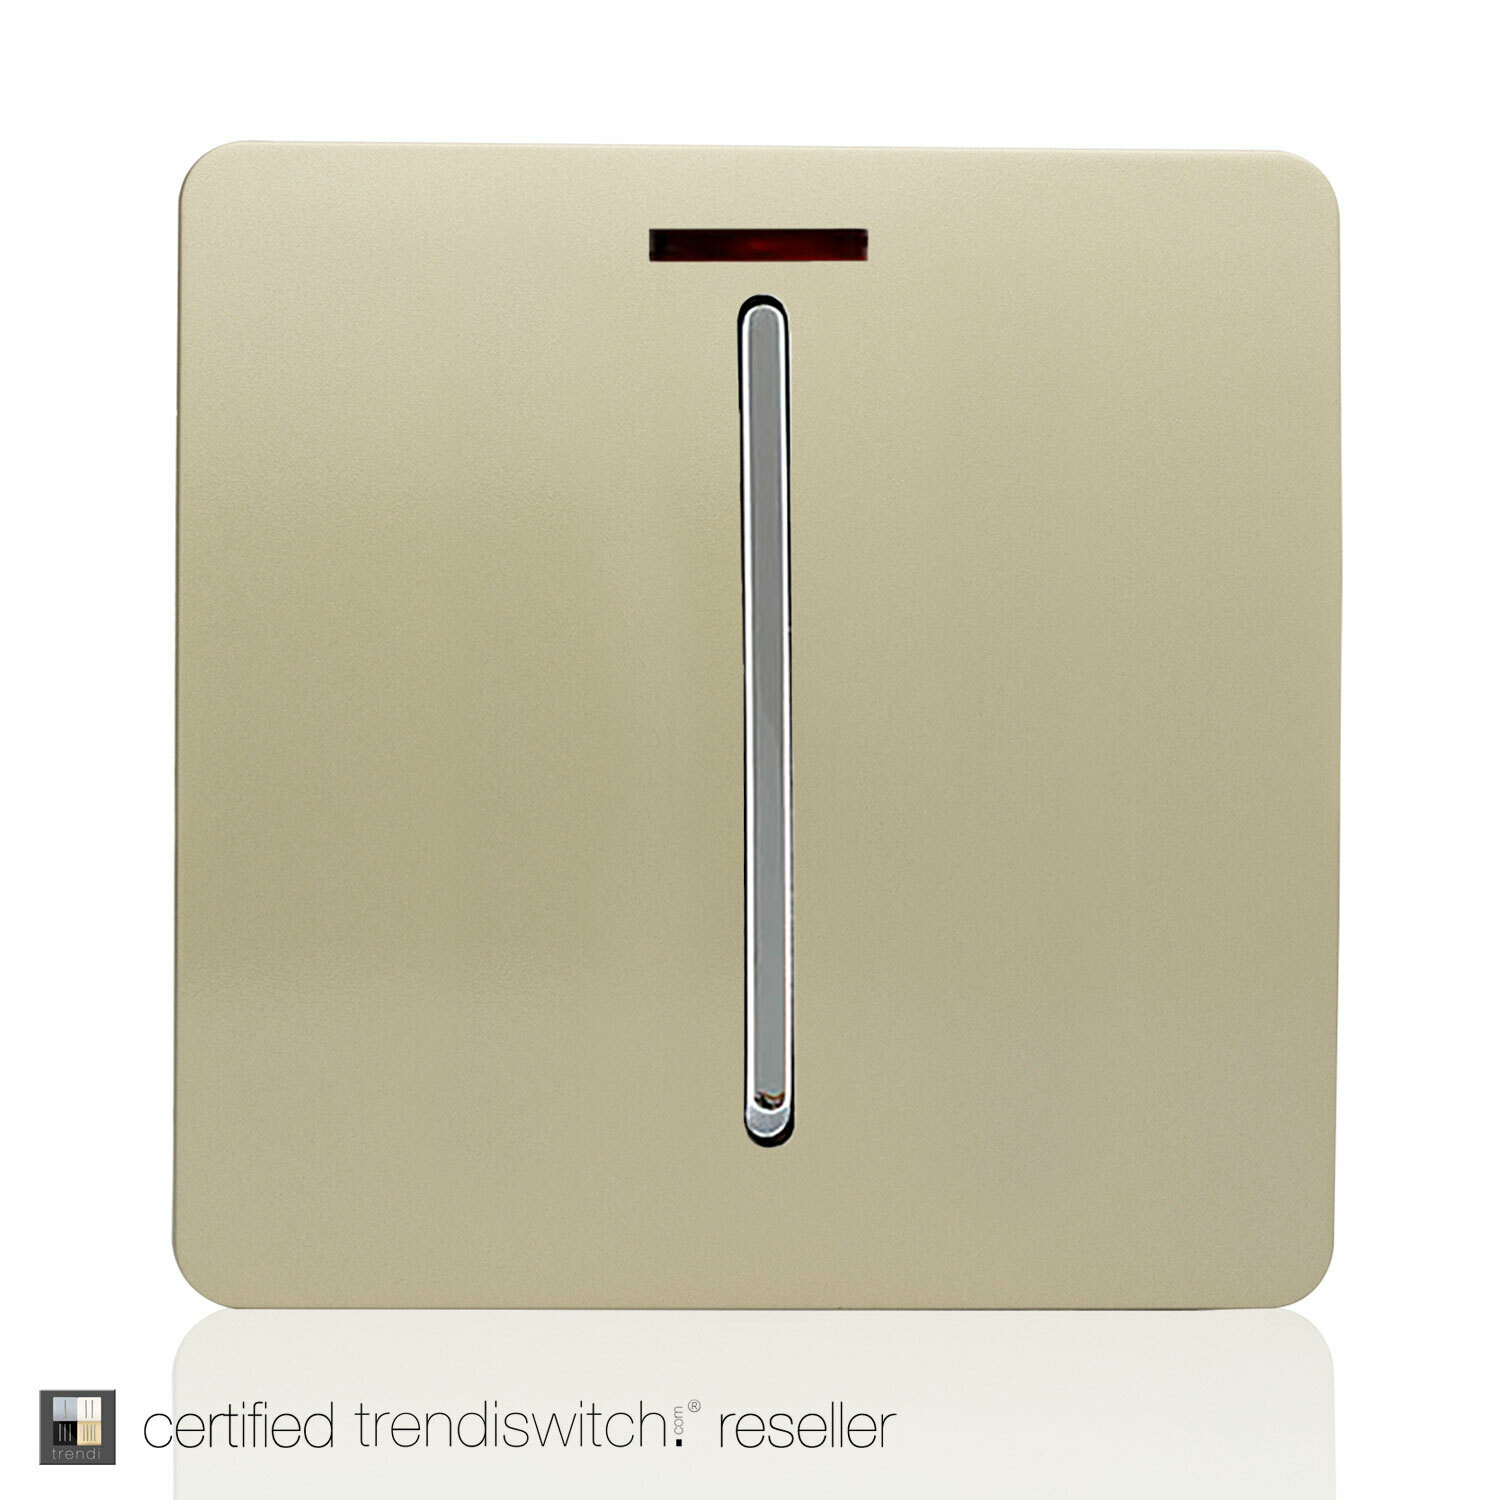 Trendi, Artistic Modern 45 Amp Neon Insert Double Pole Switch Champagne Gold Finish, BRITISH MADE, 5yrs warranty